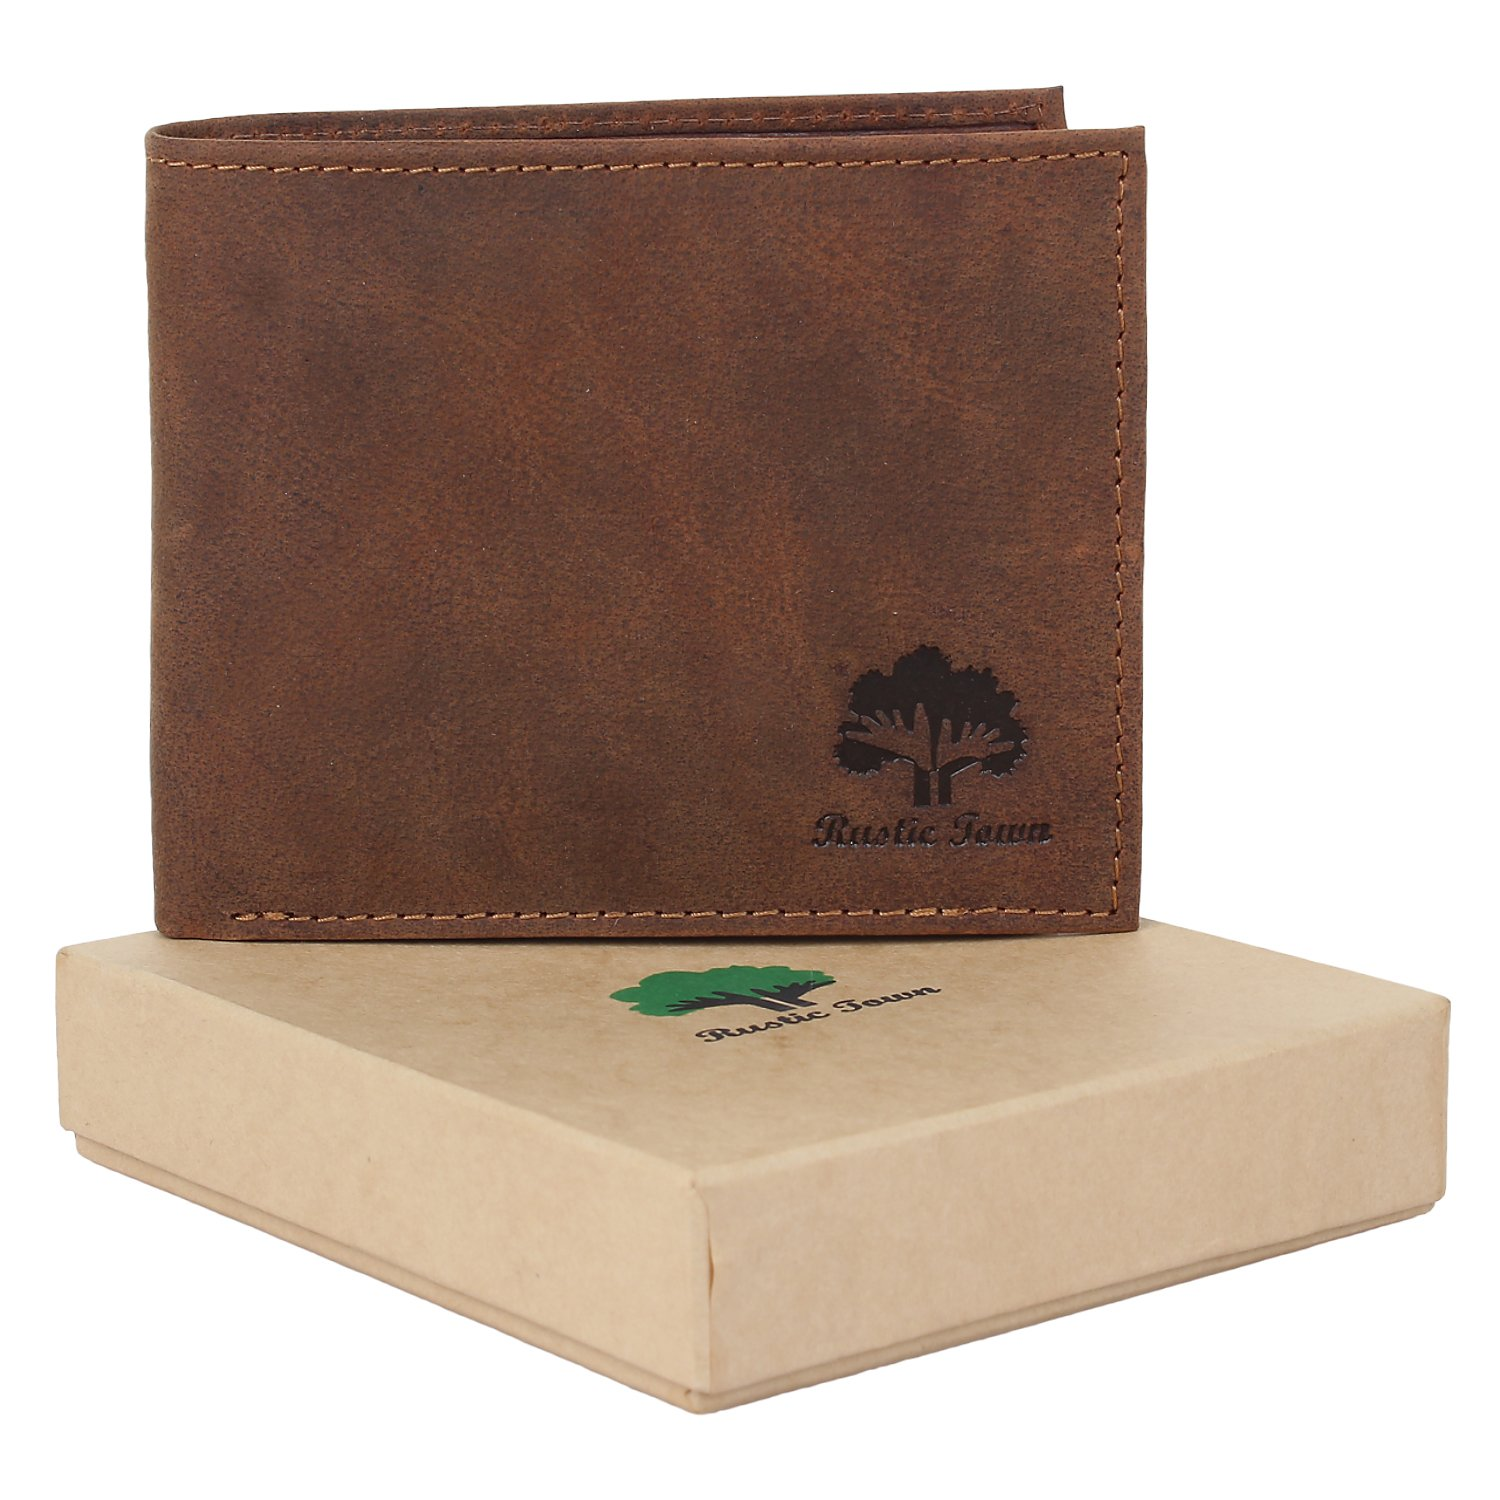 Rustic Town  Rfid Blocking Leather Wallet Mens - Genuine Leather Card Holder Gifts for Men